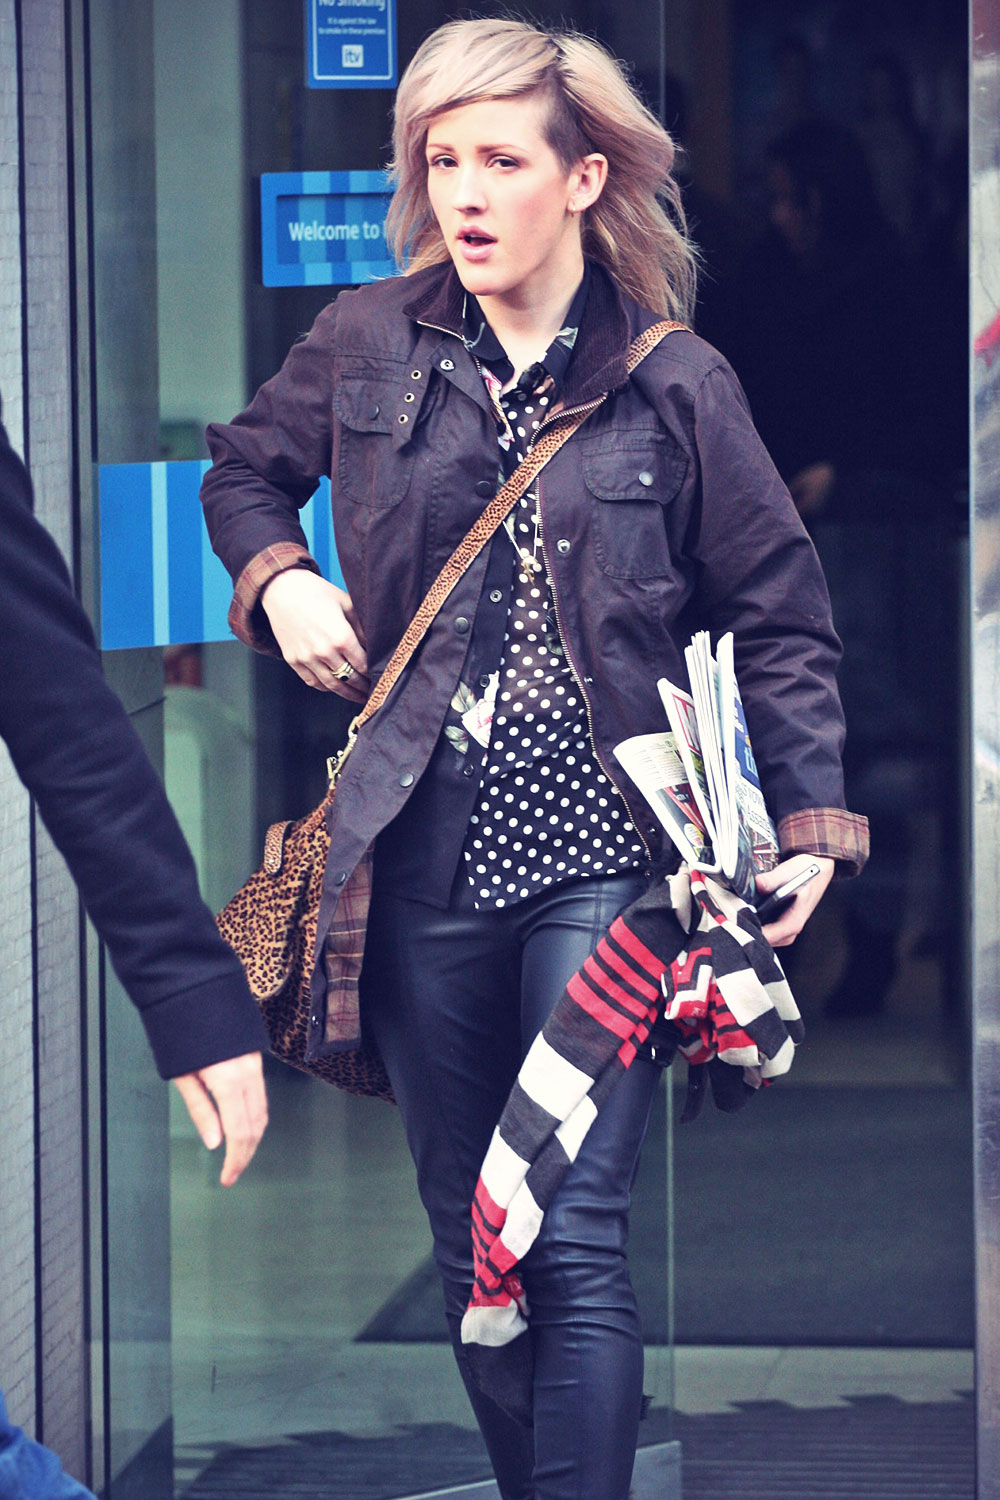 Ellie Goulding leaving the ITV Studios